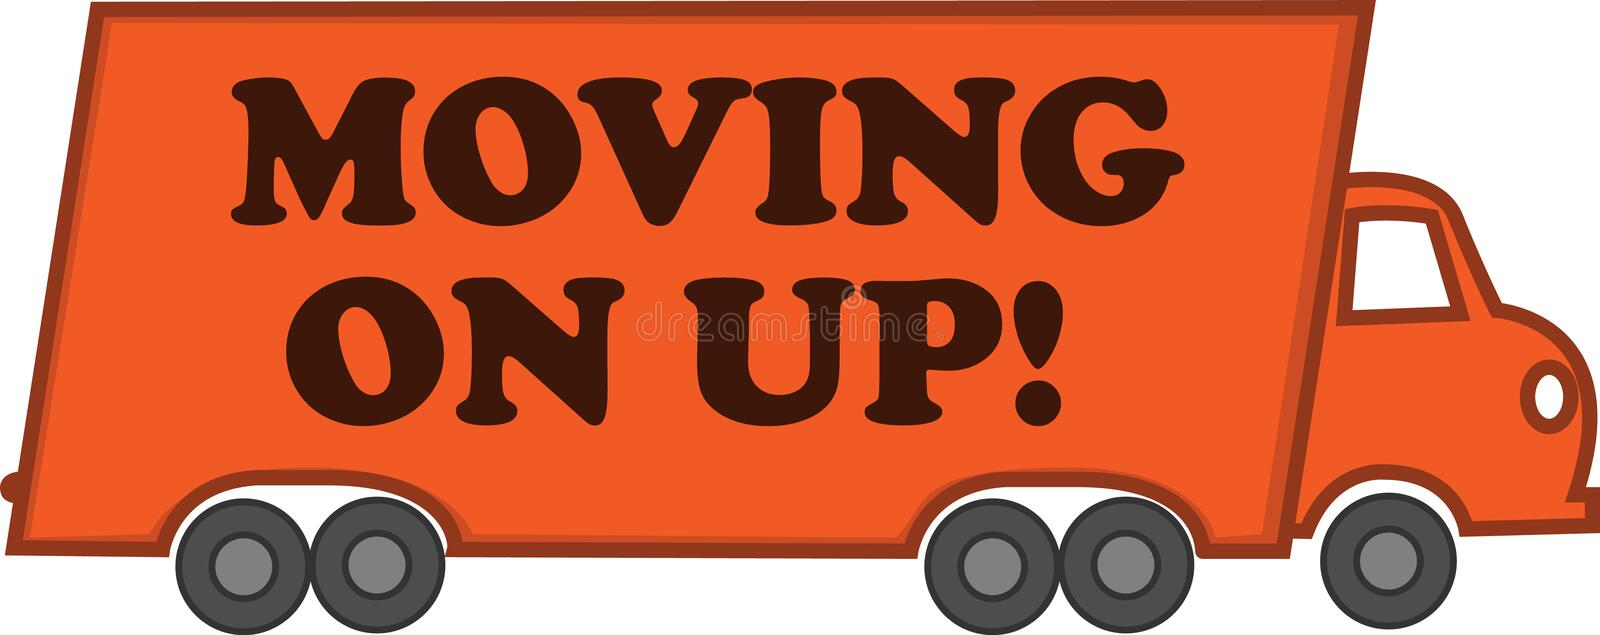 Download Moving On Up stock vector. Image of clipart, cargo, class - 16814834